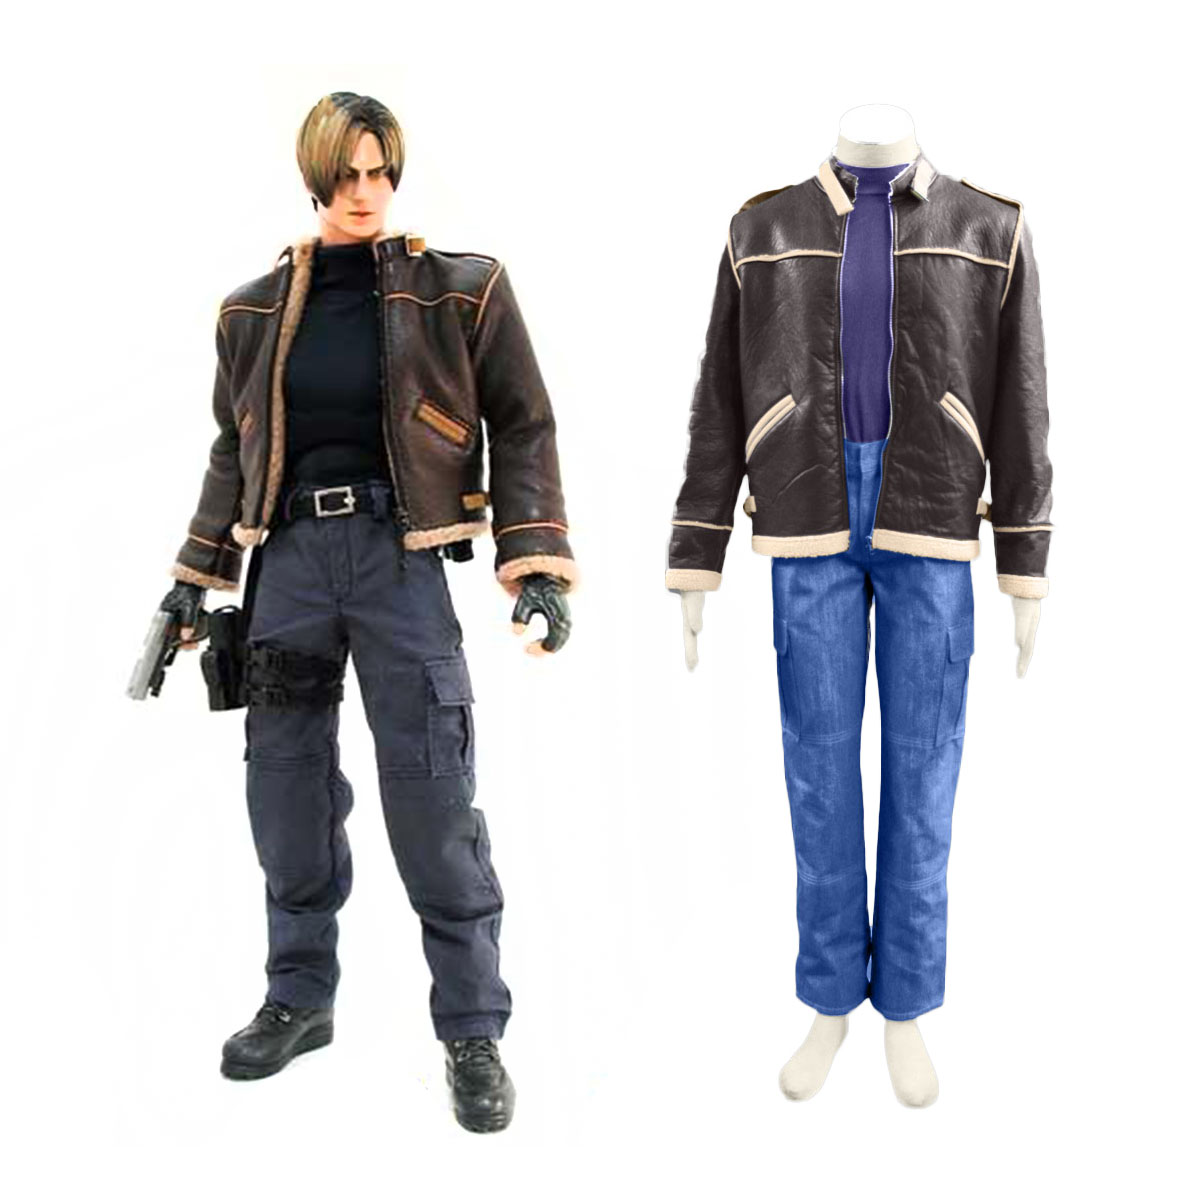 Resident Evil 4 Leon S. Kennedy Cosplay Costume New Zealand Online Store